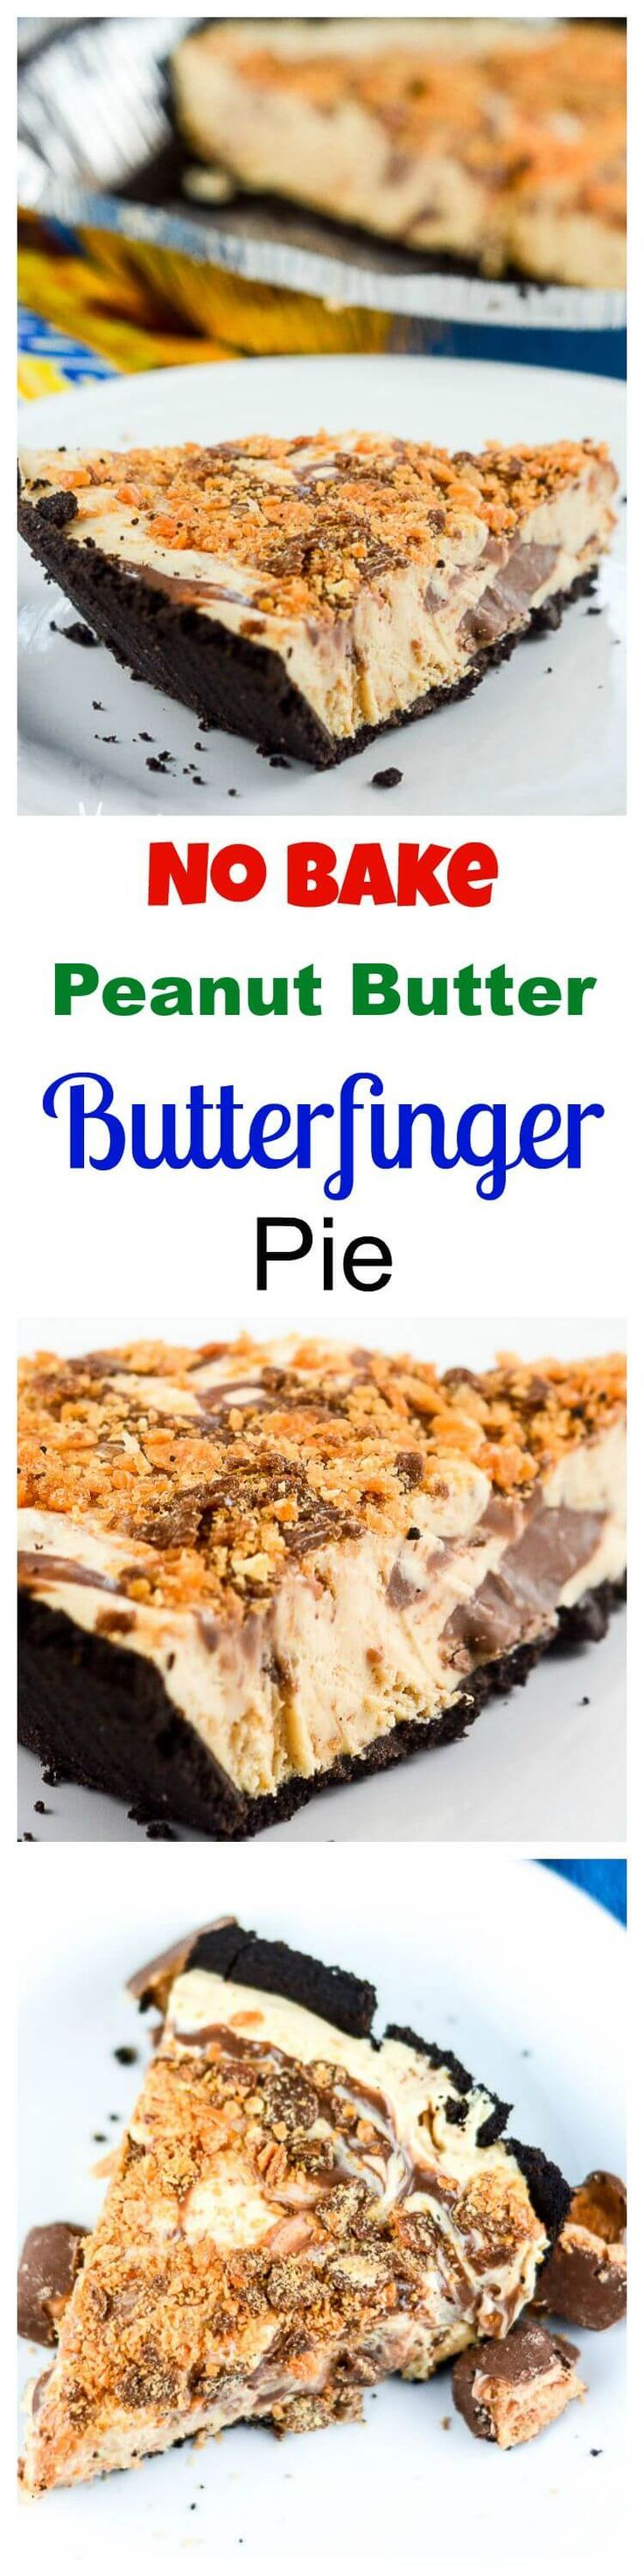 This No Bake Peanut Butter Butterfinger Pie, with a Nutella chocolate hazelnut spread swirl, is an ultra rich and decadent make-ahead frozen chocolate candy pie that requires no baking. ~ http://FlavorMosaic.com